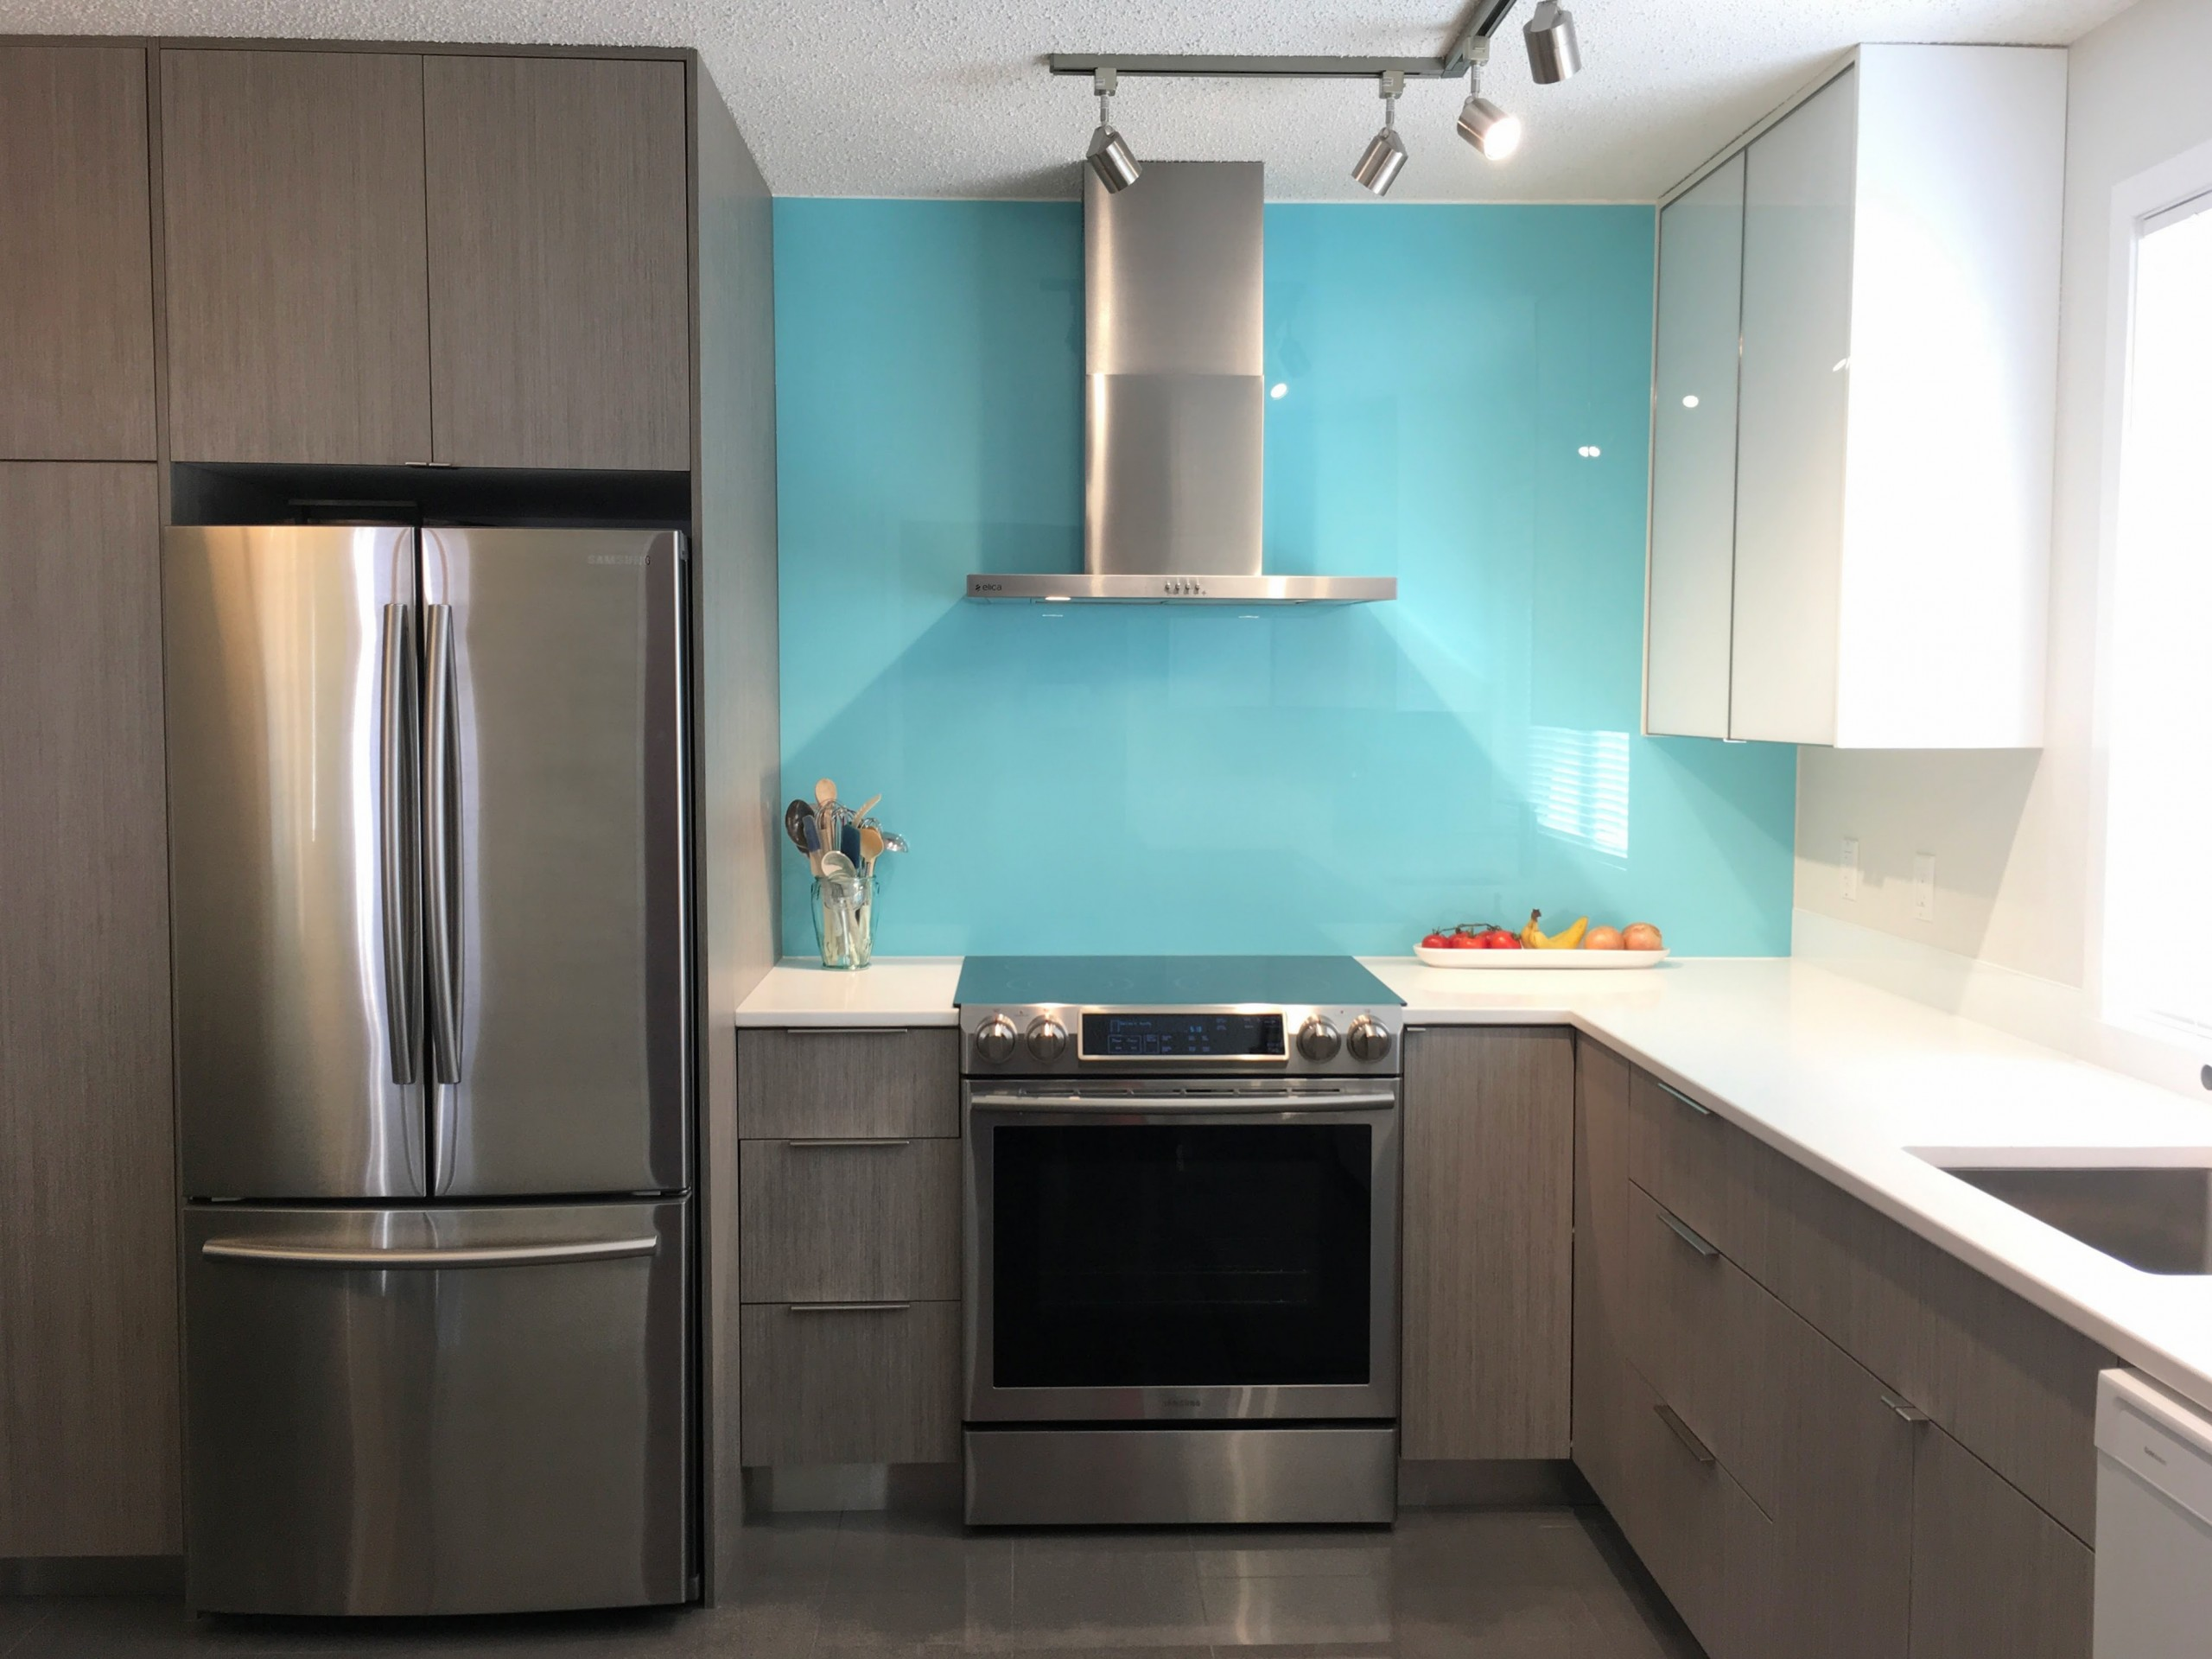 Interior photo of grey kitchen cabinets, stainless steel stove and fridge, white quartz counters and teal back-painted tempered glass backsplash.